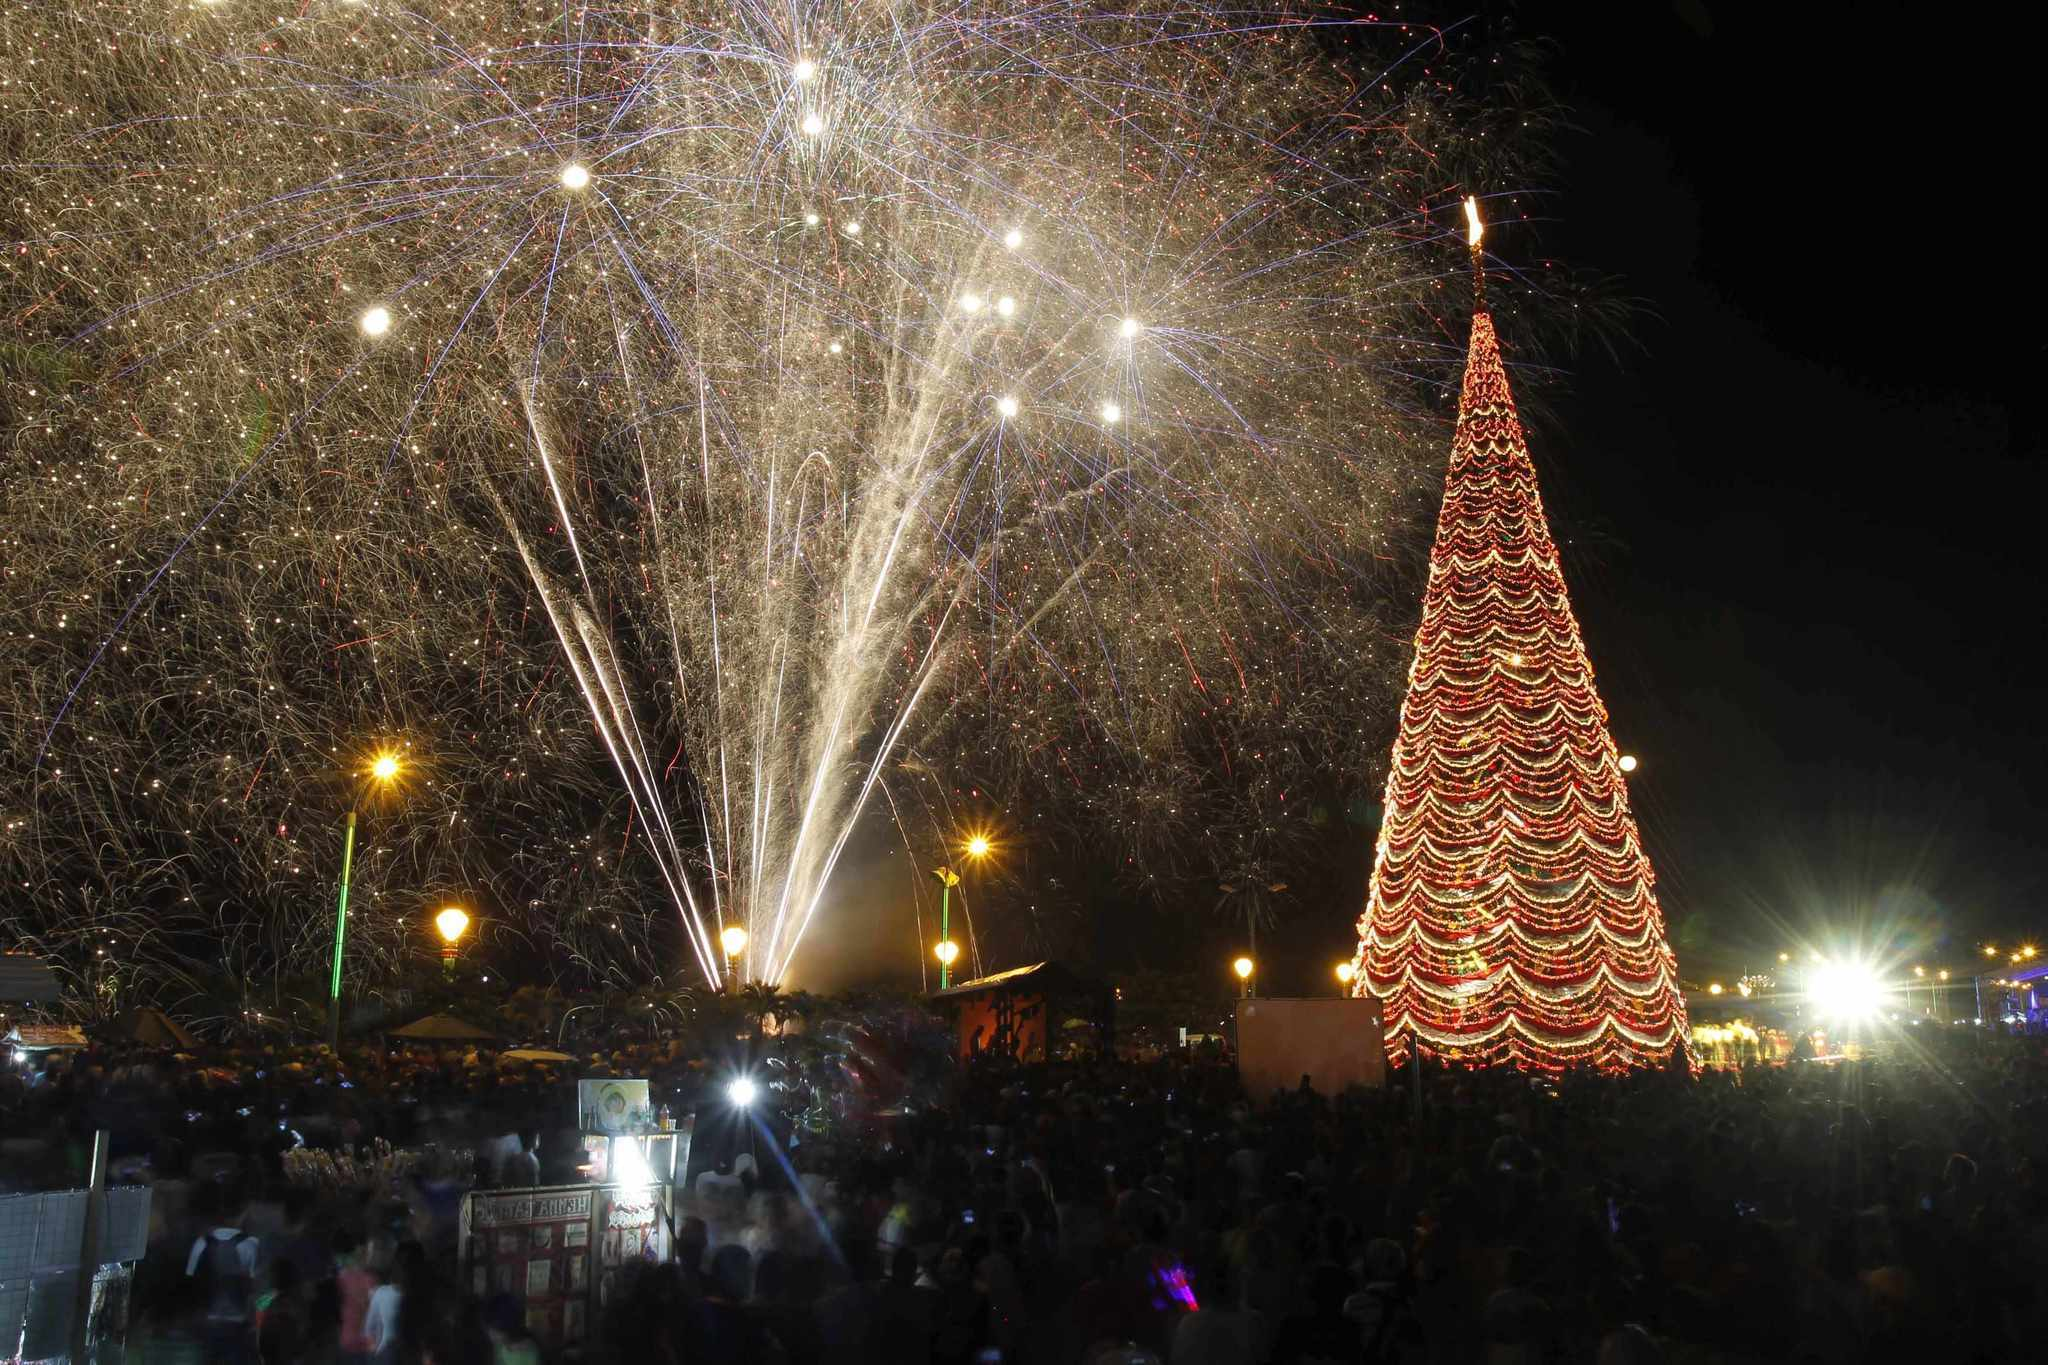 Pictures: Holiday lights from around the globe - Christmas in Manila, The Philippines